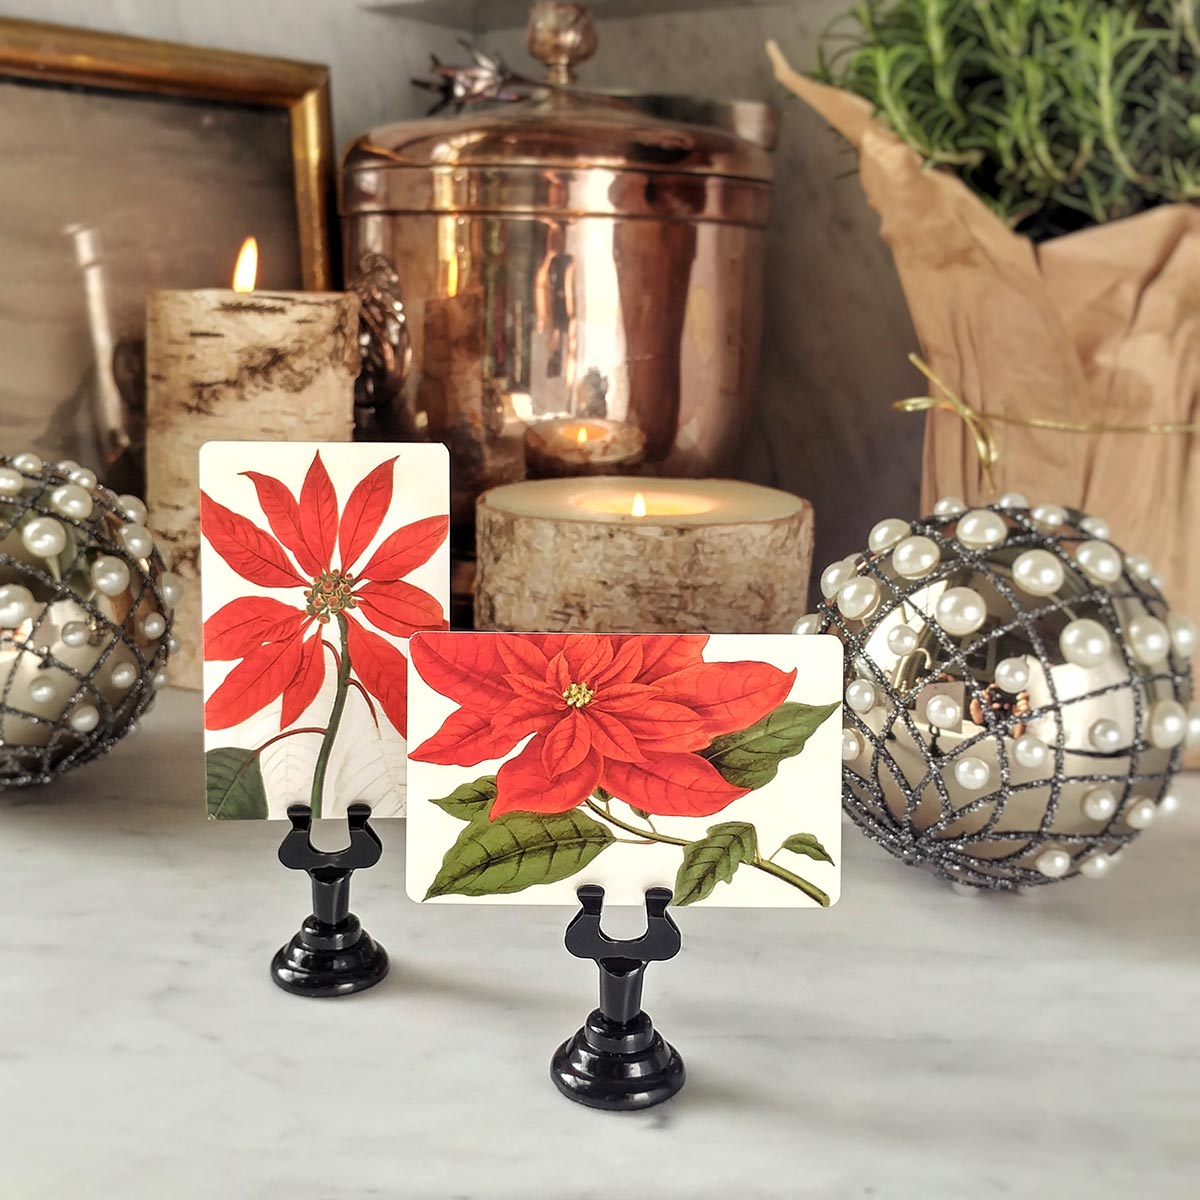 The Punctilious Mr. P's 'Poinsettia' place cards